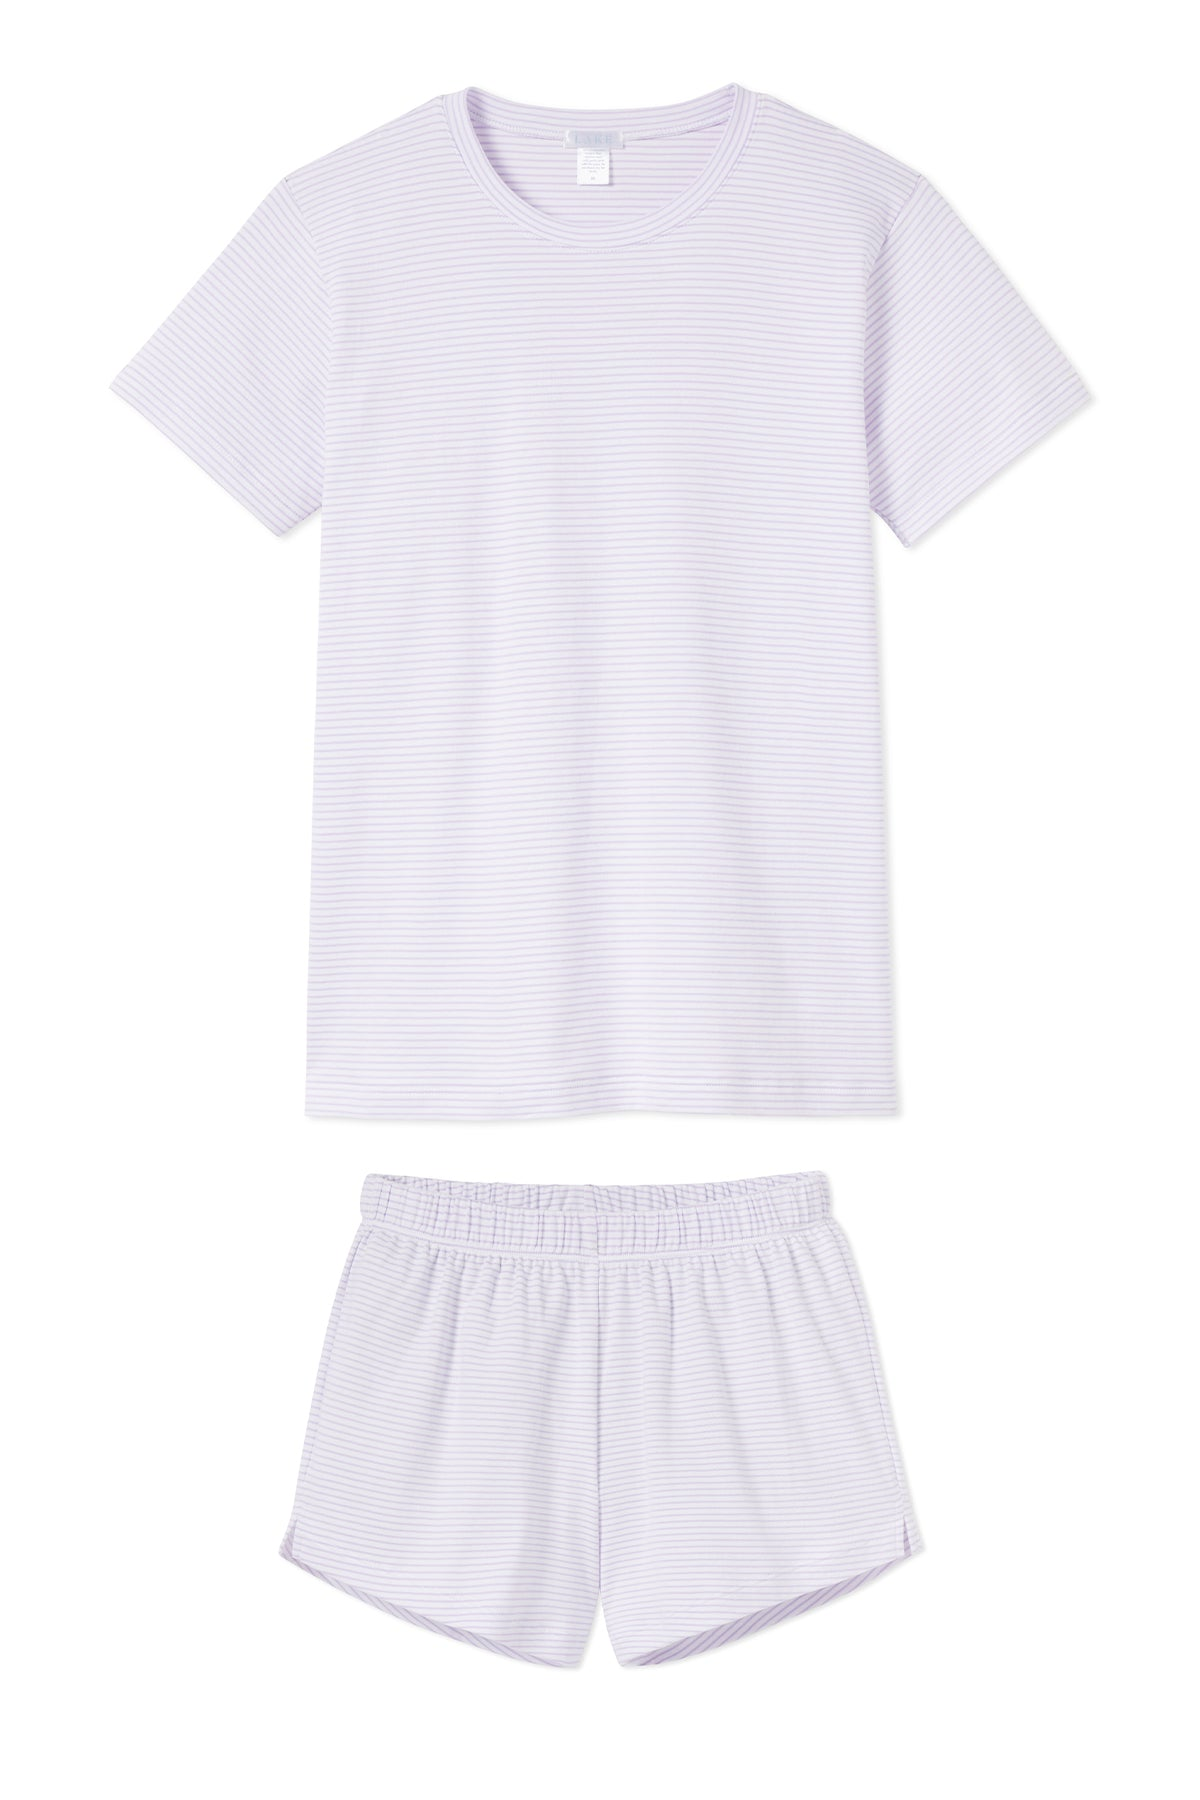 Pima Weekend Shorts Set in Wisteria